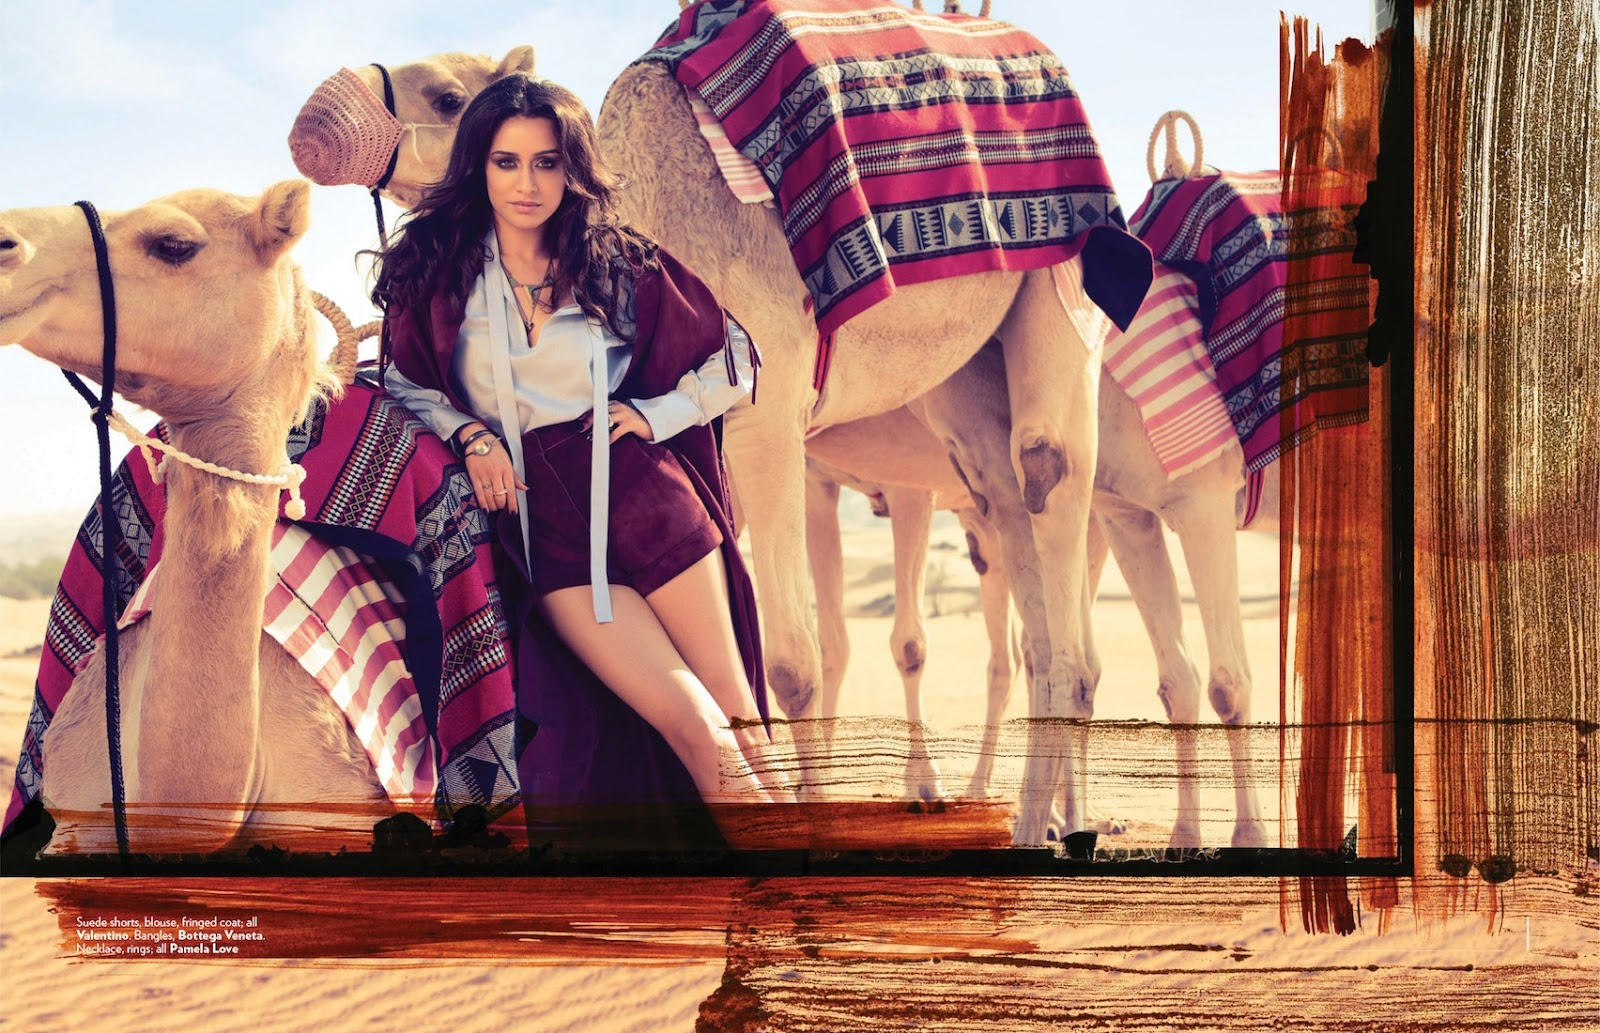 http://4.bp.blogspot.com/-mtxSeuswP6M/UzyE36txn5I/AAAAAAABN20/J76a-Gv86v8/s1600/vogue+india+2014+april4.jpg